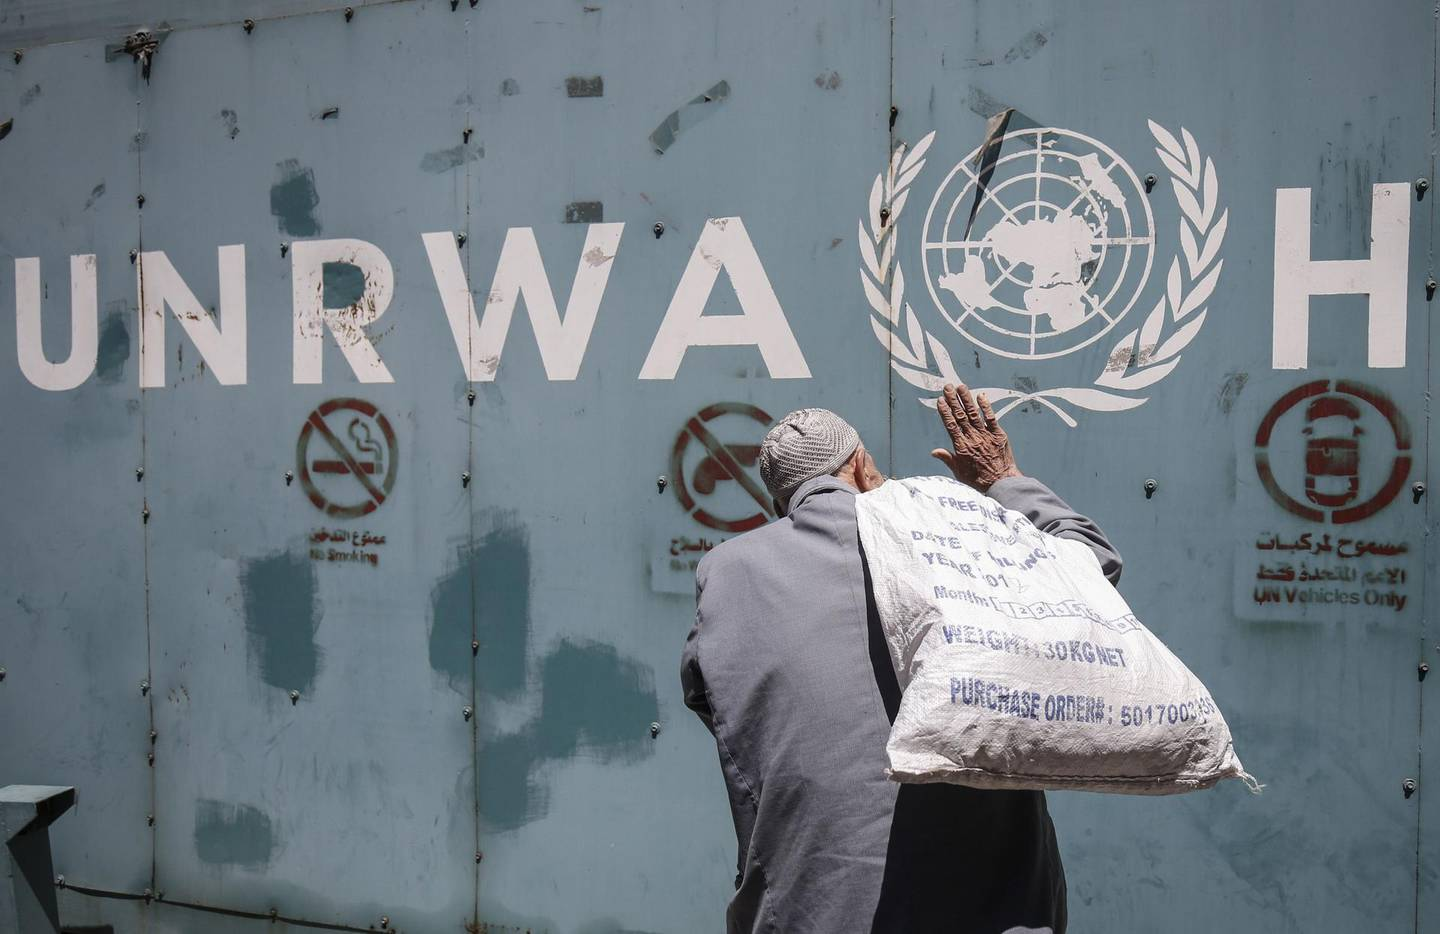 A Palestinian man stands in front of the emblem of the UN Relief and Works Agency for Palestine Refugees in the Near East (UNRWA) outside the agency's offices in Gaza City on July 31, 2018. / AFP PHOTO / SAID KHATIB